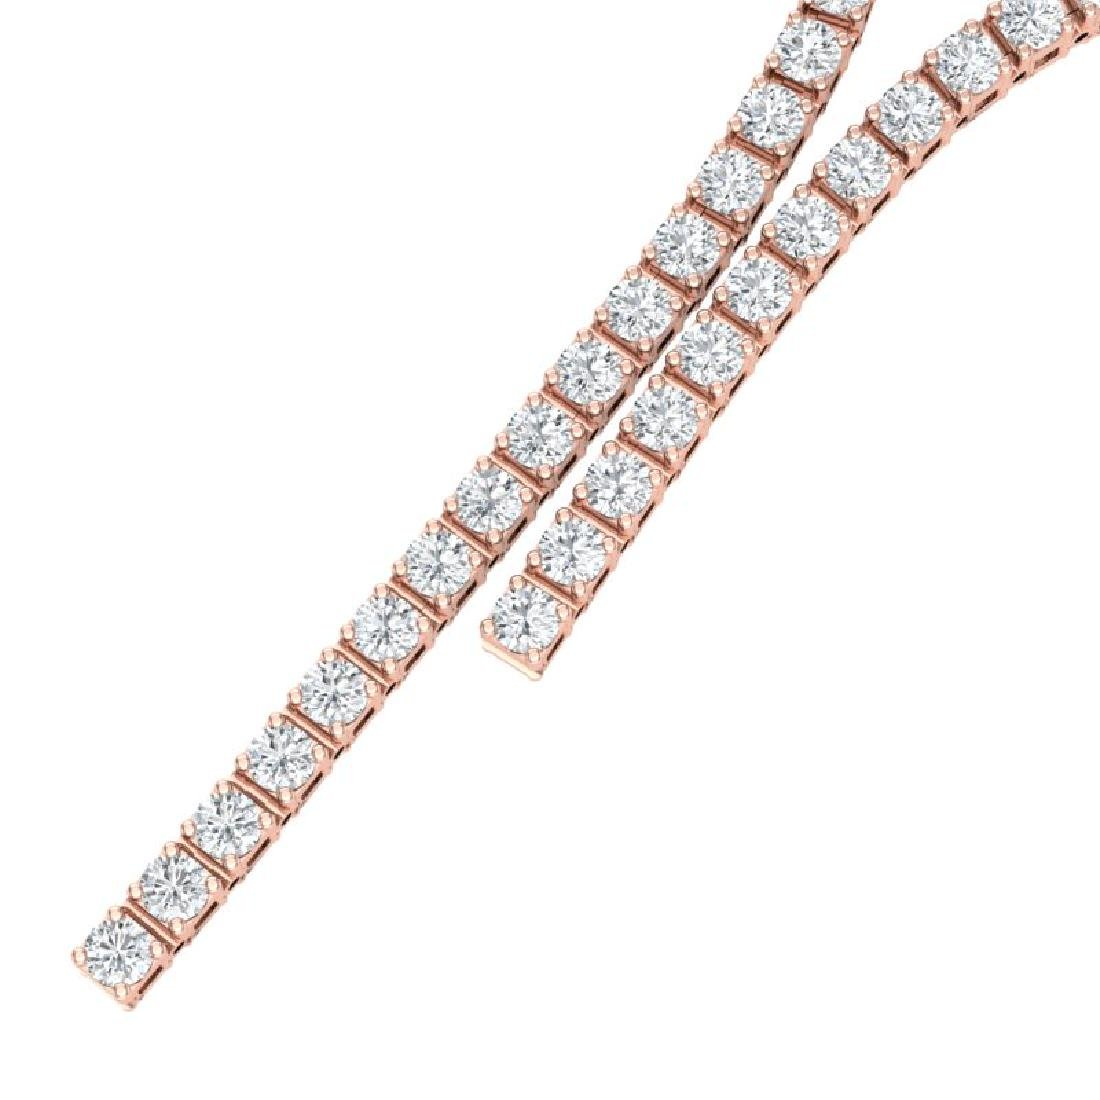 10 CTW Certified SI/I Diamond Necklace 18K Rose Gold